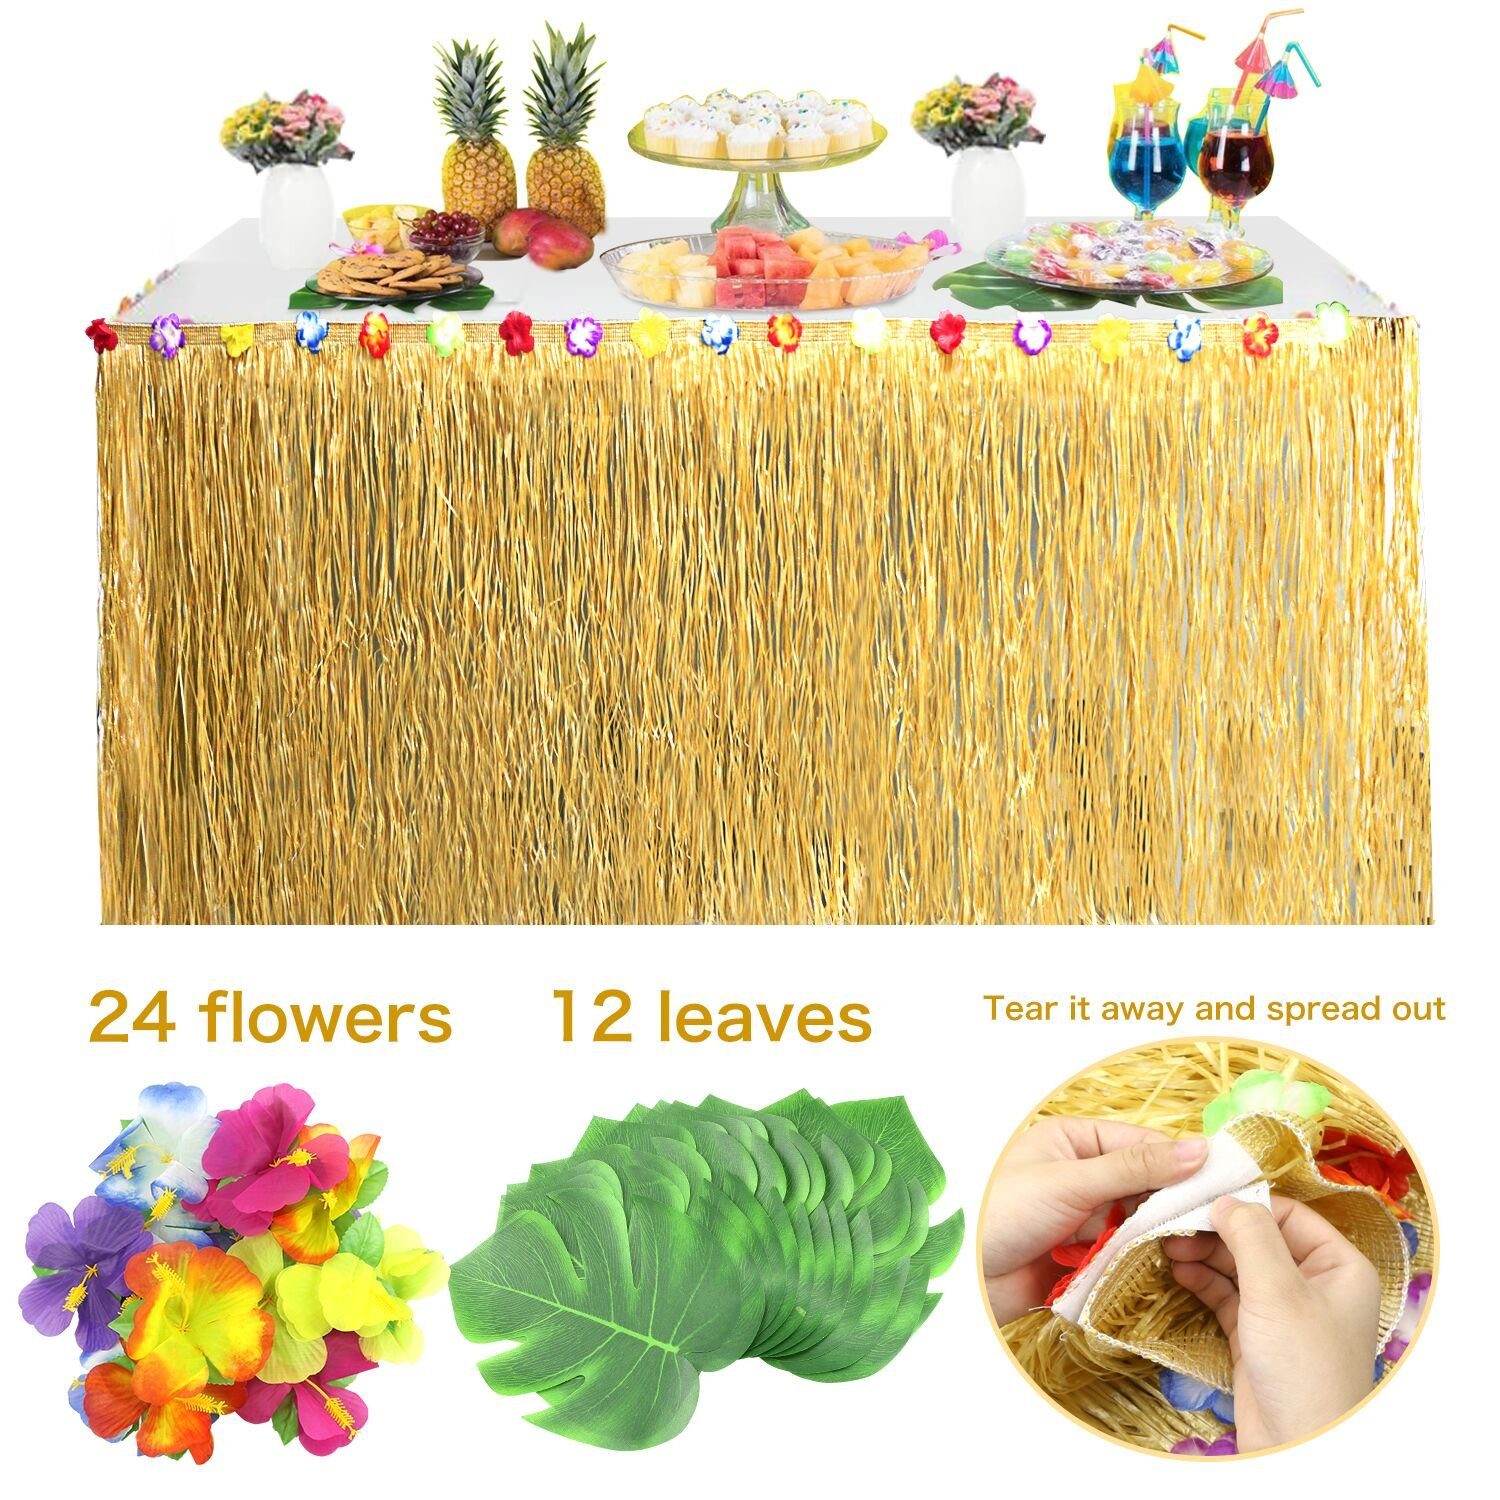 Buluri 1pc Hawaiian Luau Grass Table Skirt (108 x 29.5in) + 24pcs Hibiscus Flowers + 12pcs Tropical Medium Turtle Leaves for Beach, Birthdays, Tiki, Tropical Island, Party, Luau Decoration